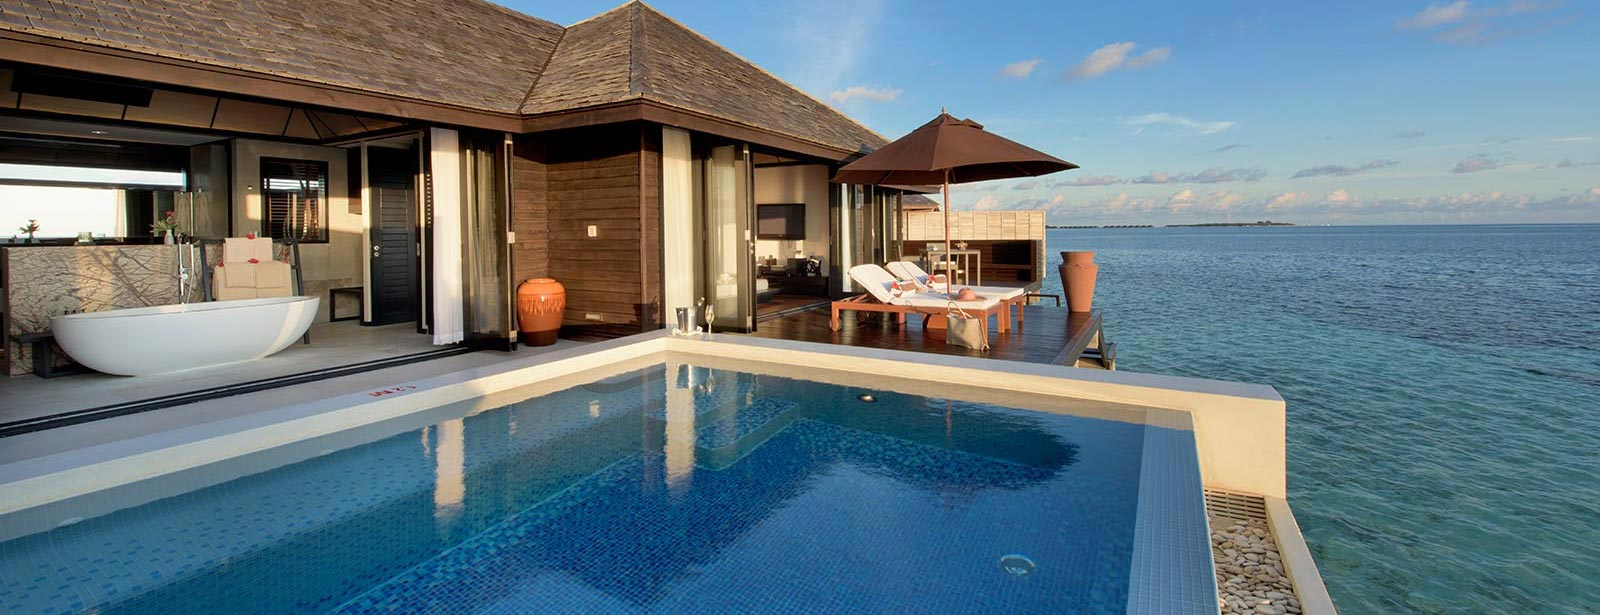 Maldives All Inclusive Resort - Lily Beach